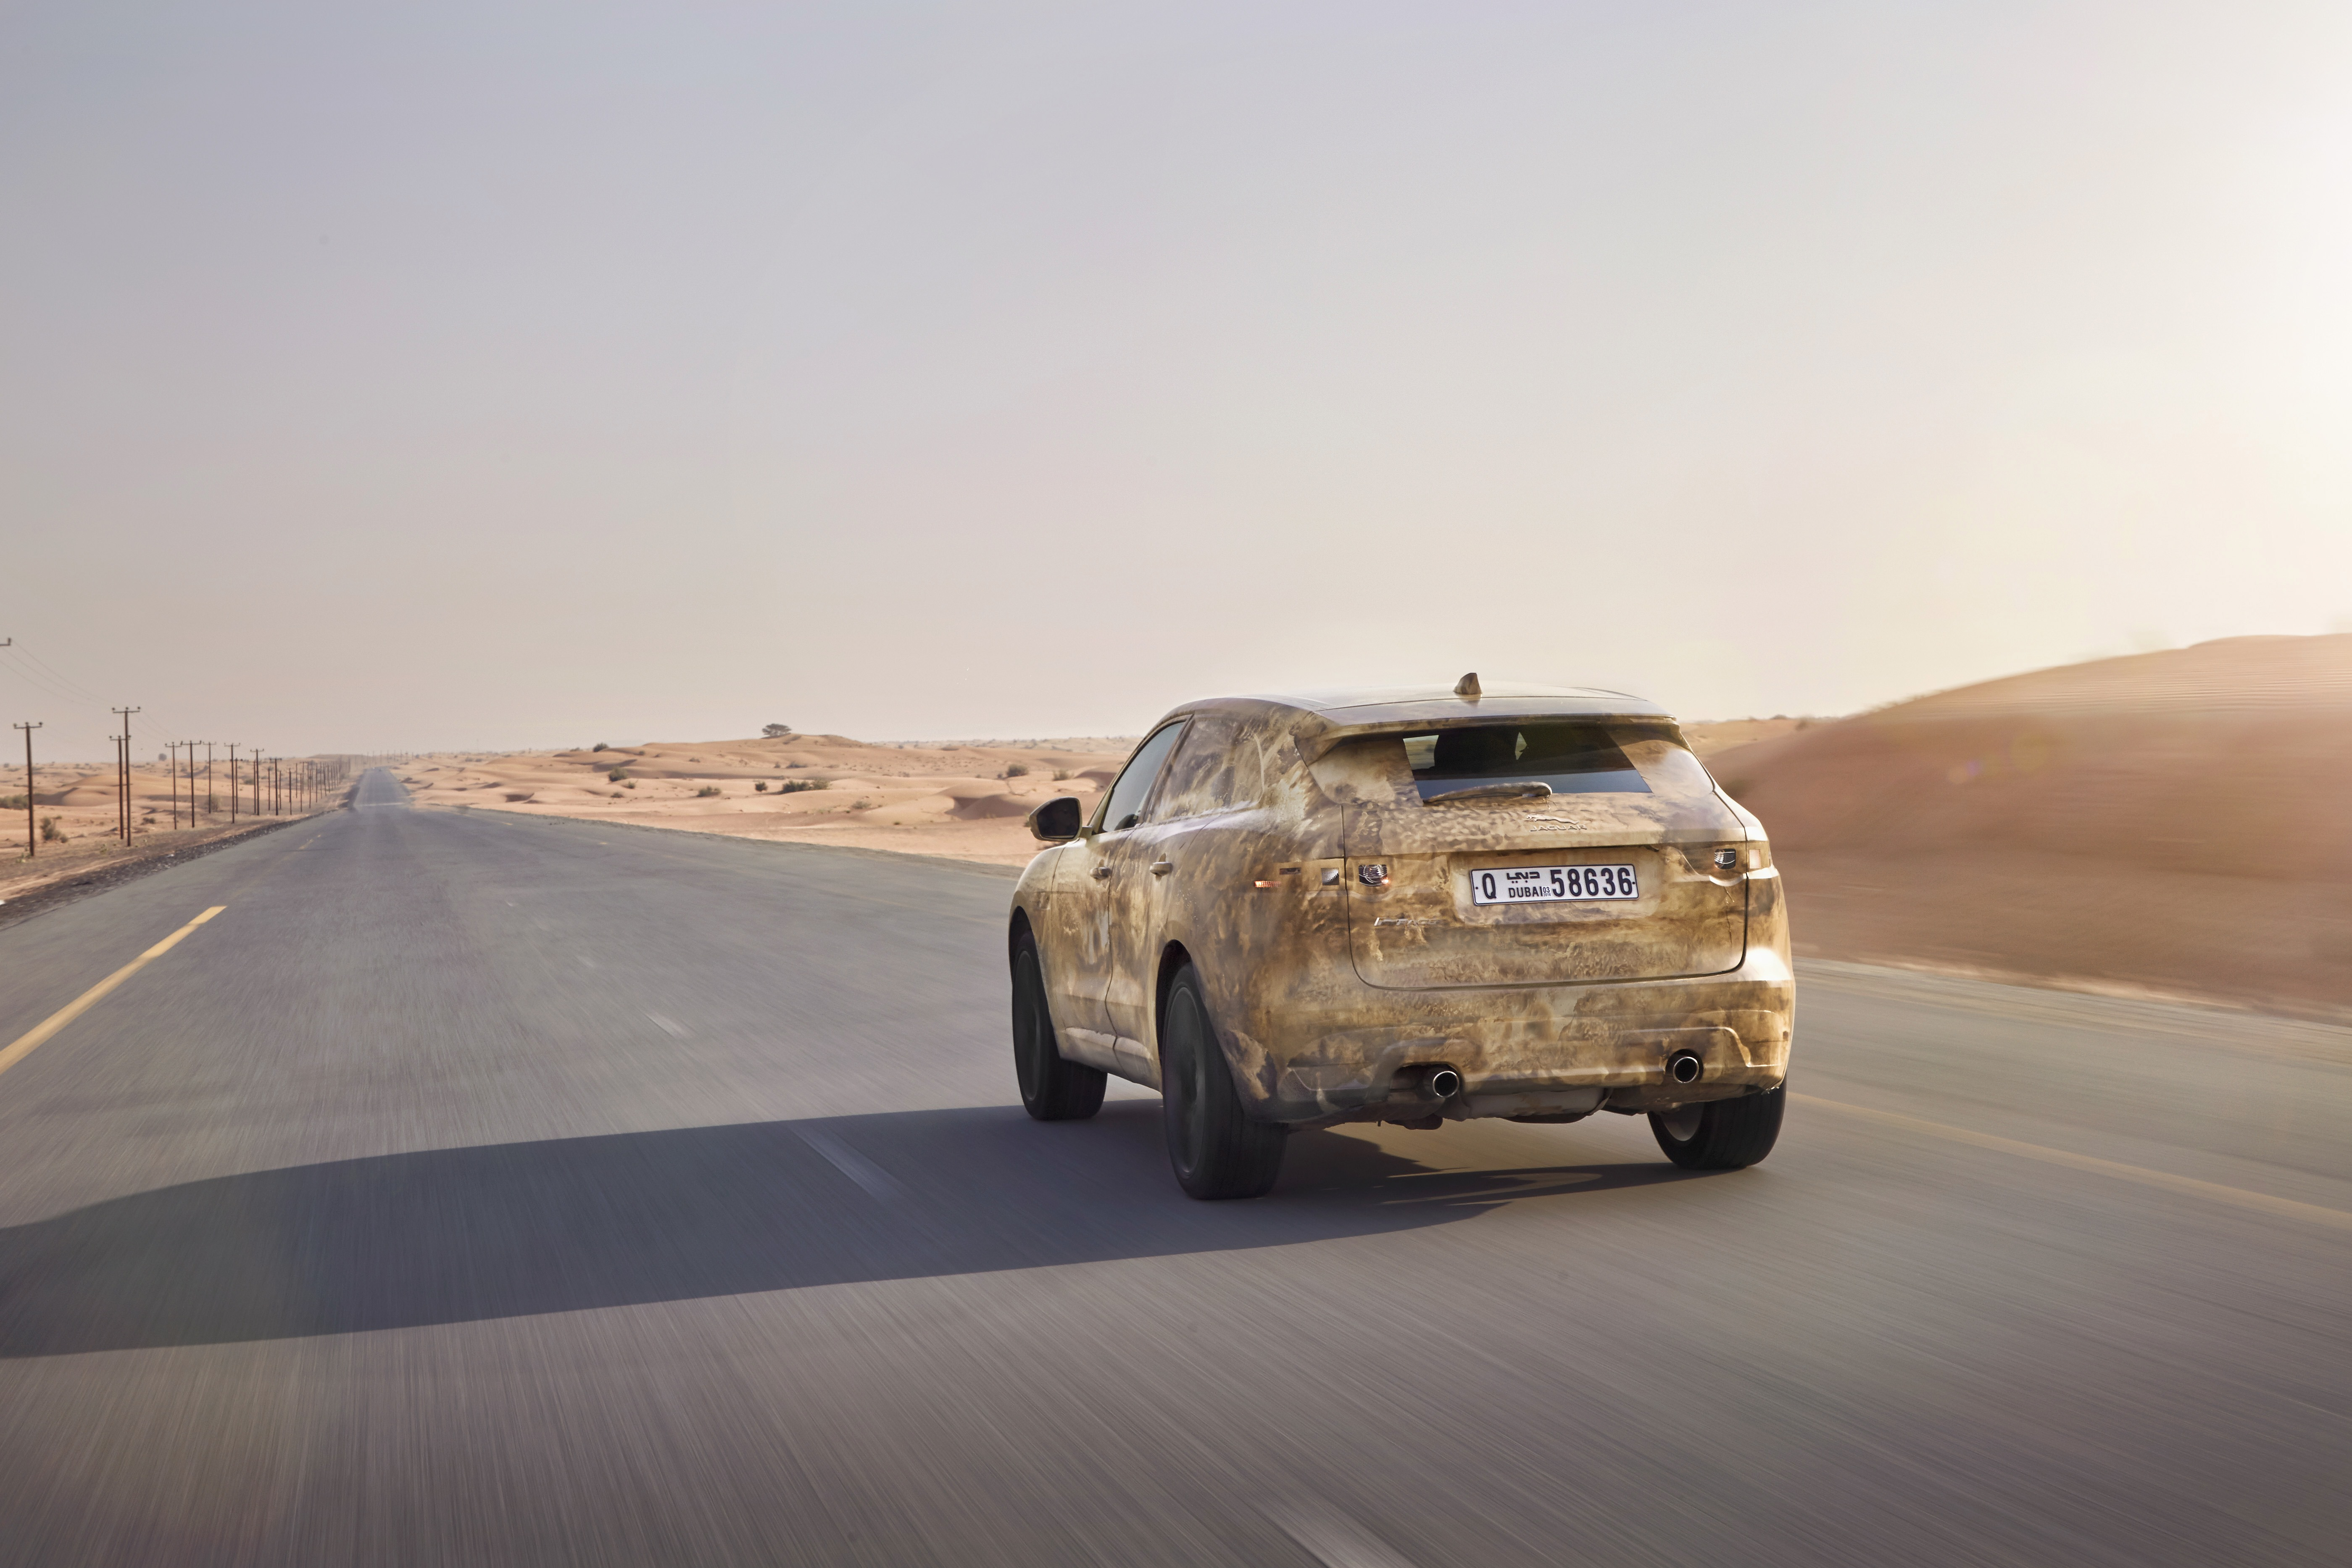 Jaguar F-Pace testing in the heat in Dubai.